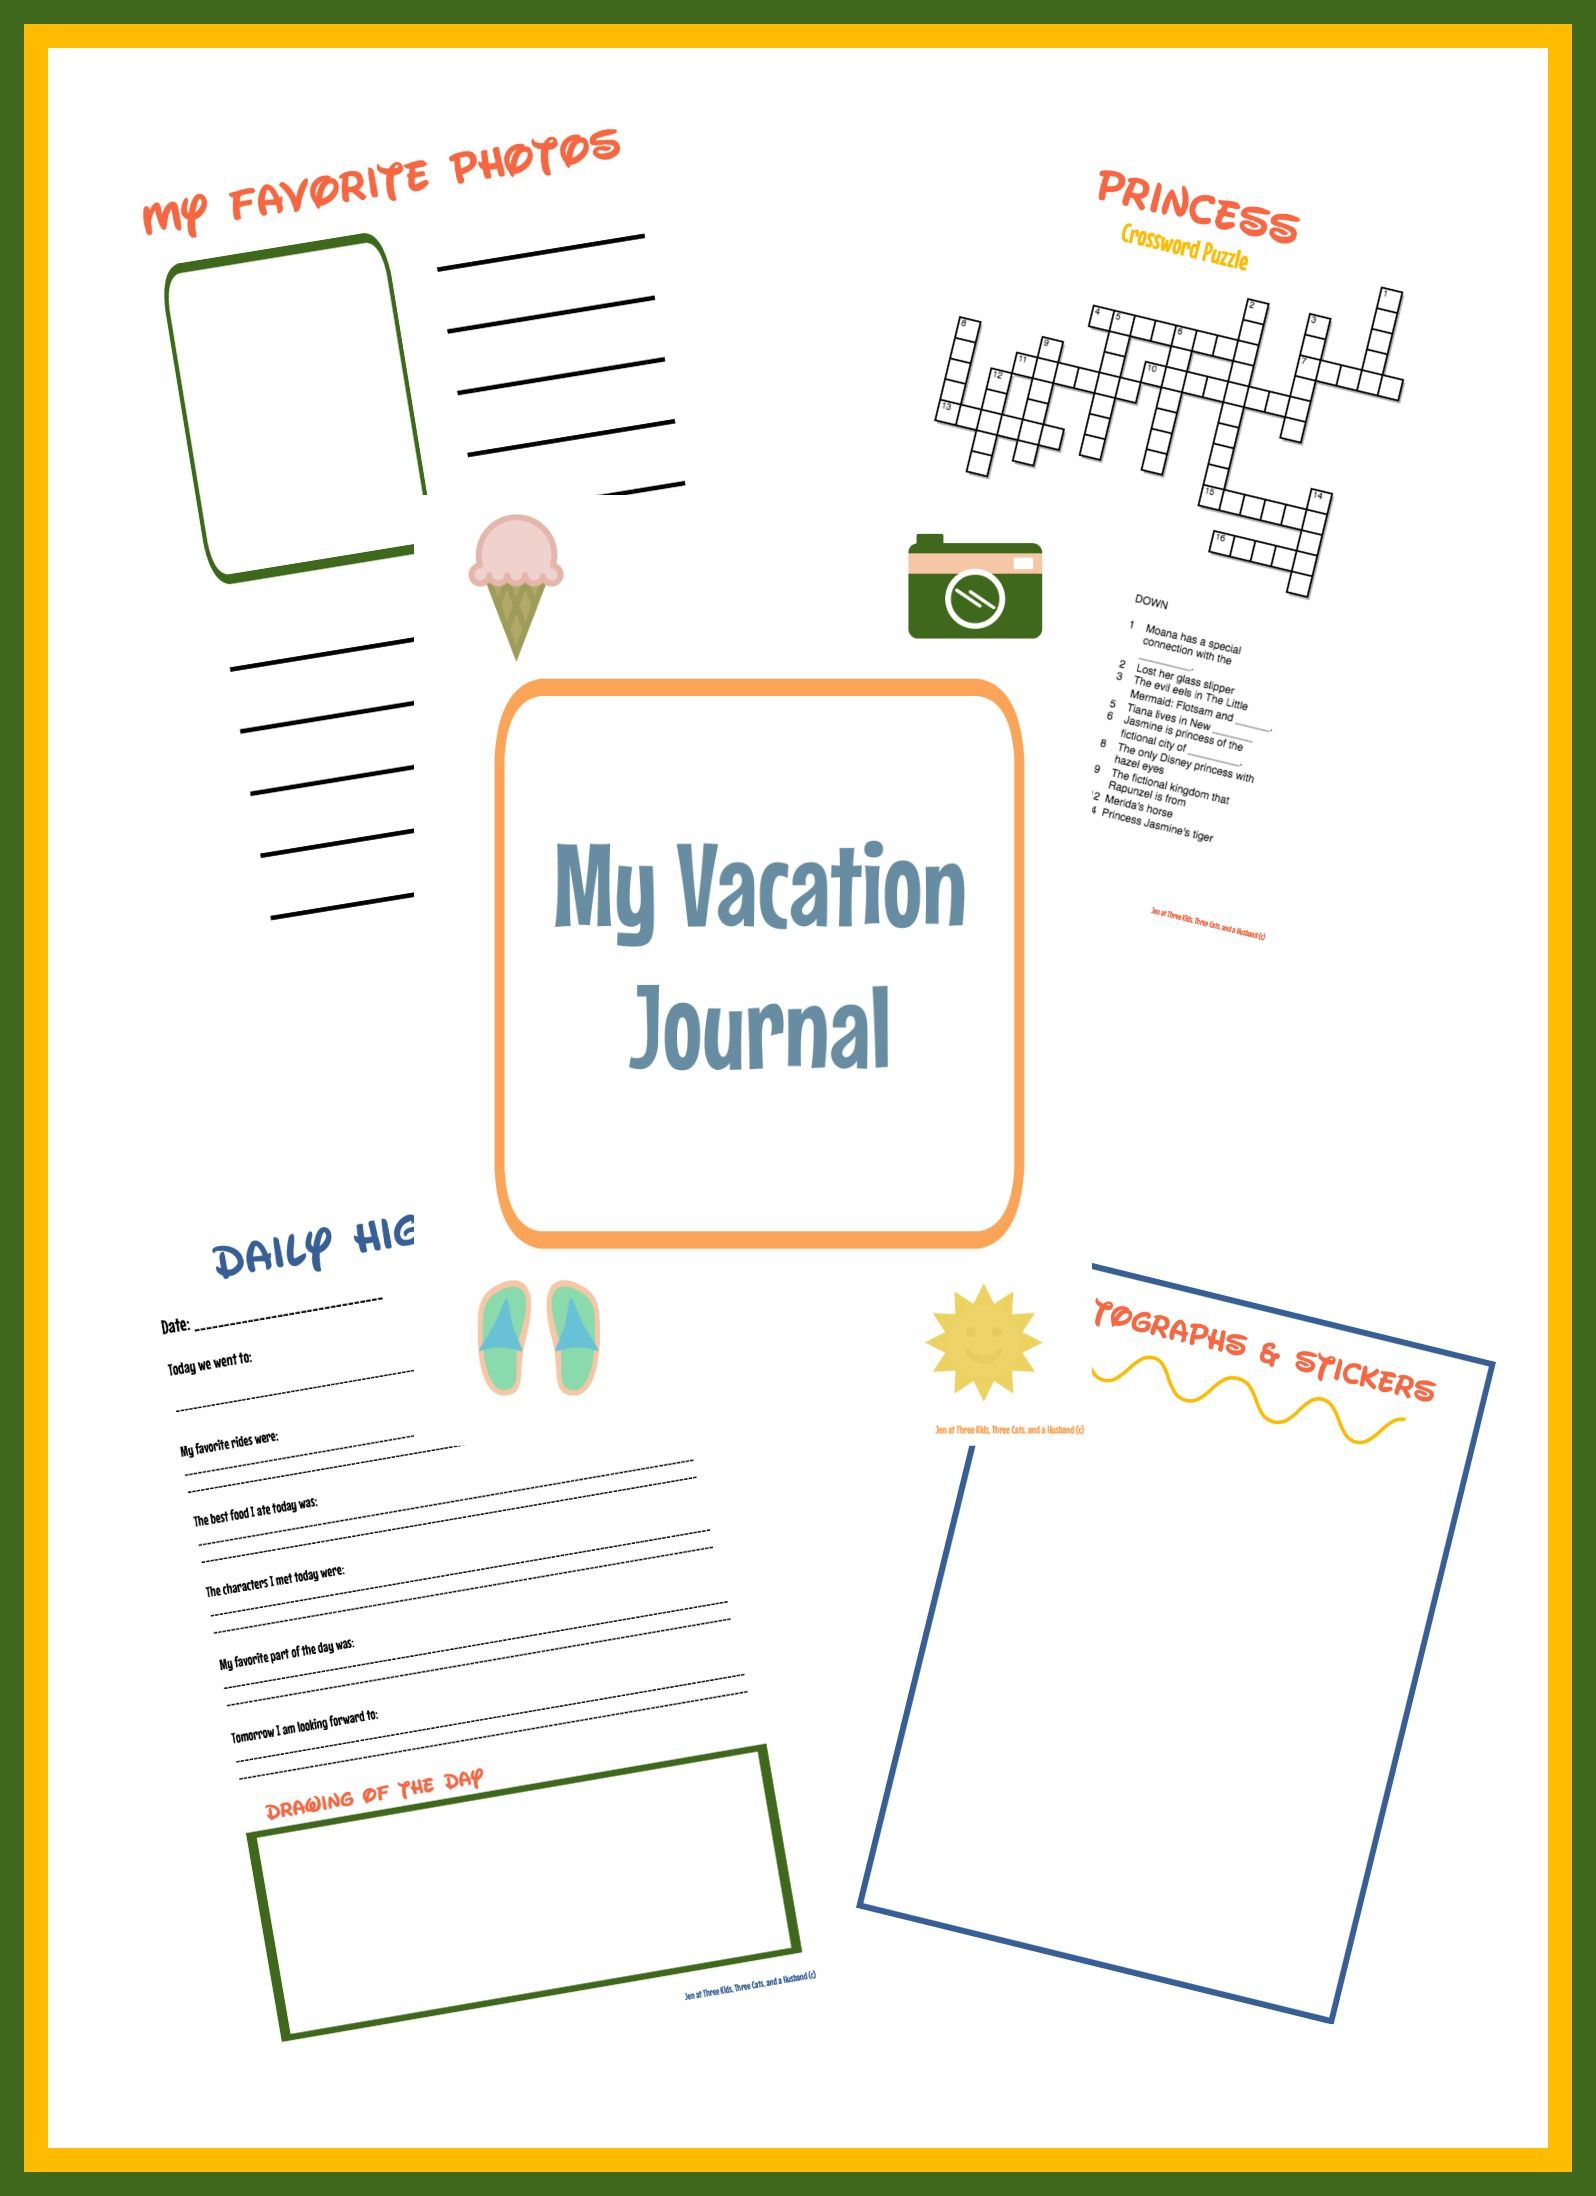 printable theme park vacation journal for kids